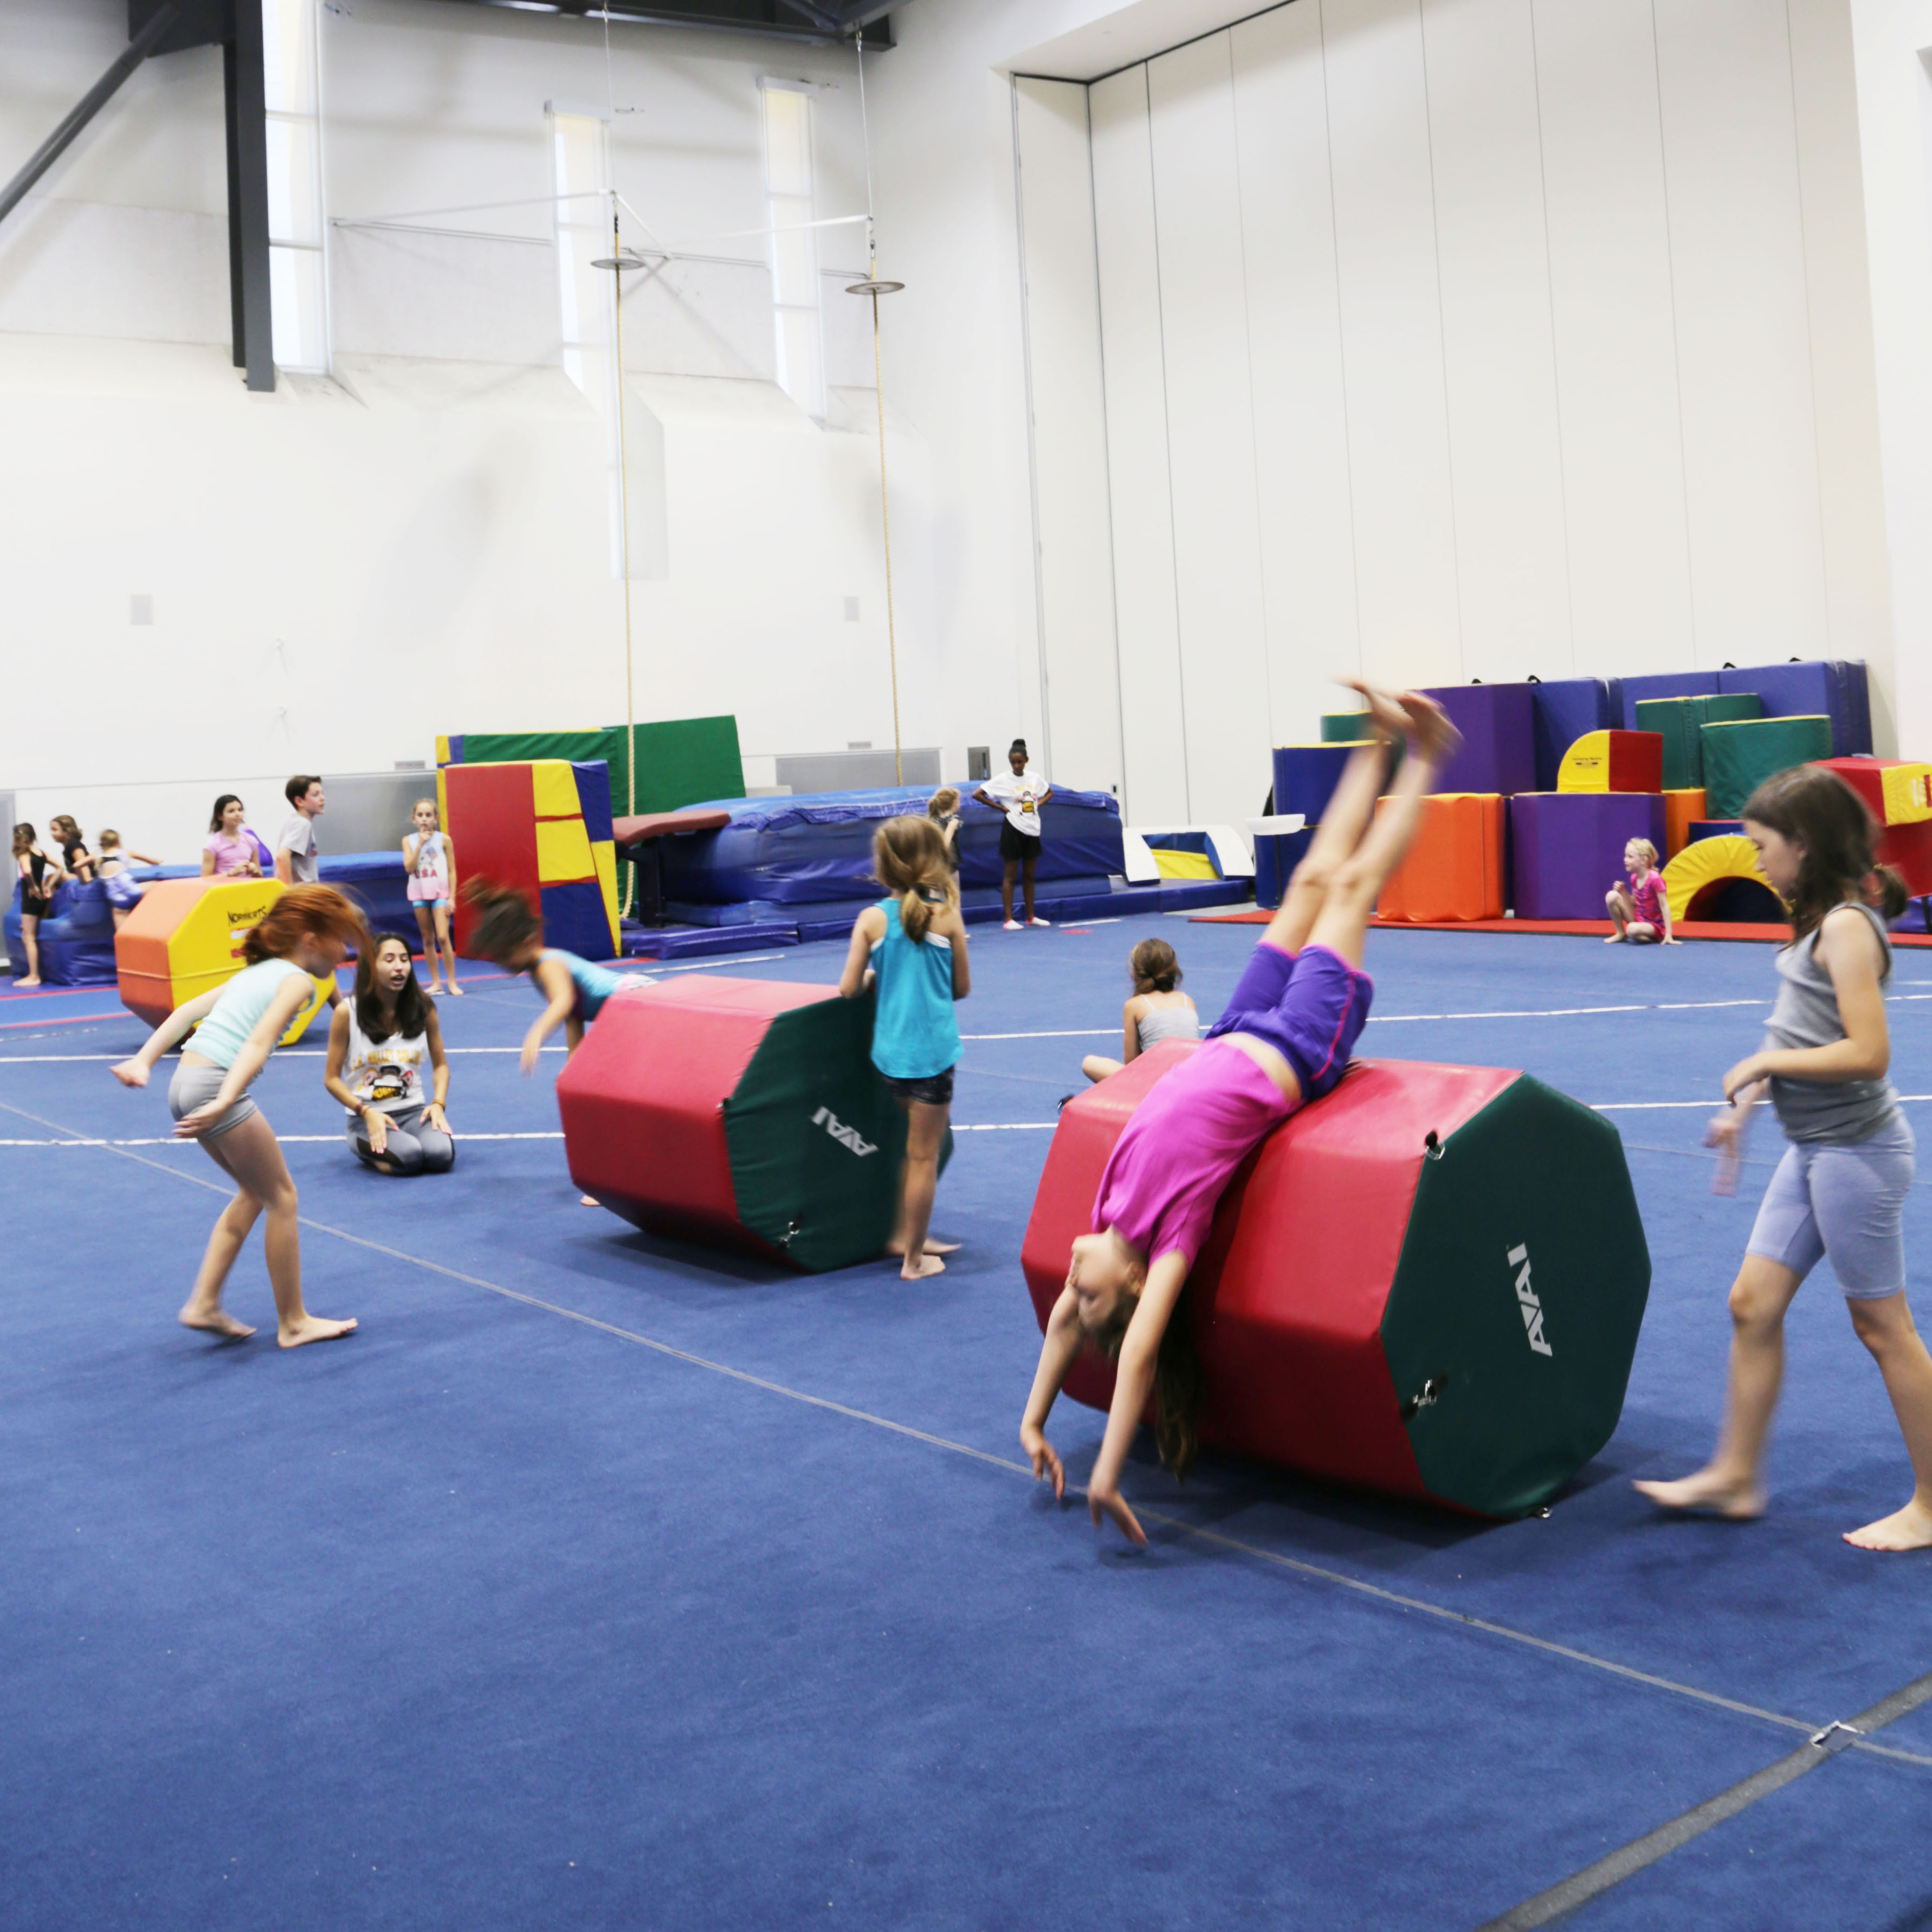 https://monarchcamps.com/wp-content/uploads/2018/01/monarch-camps-summer-camp-gymnastics-camp-children-tumbling-on-gymnastic-floor.jpg